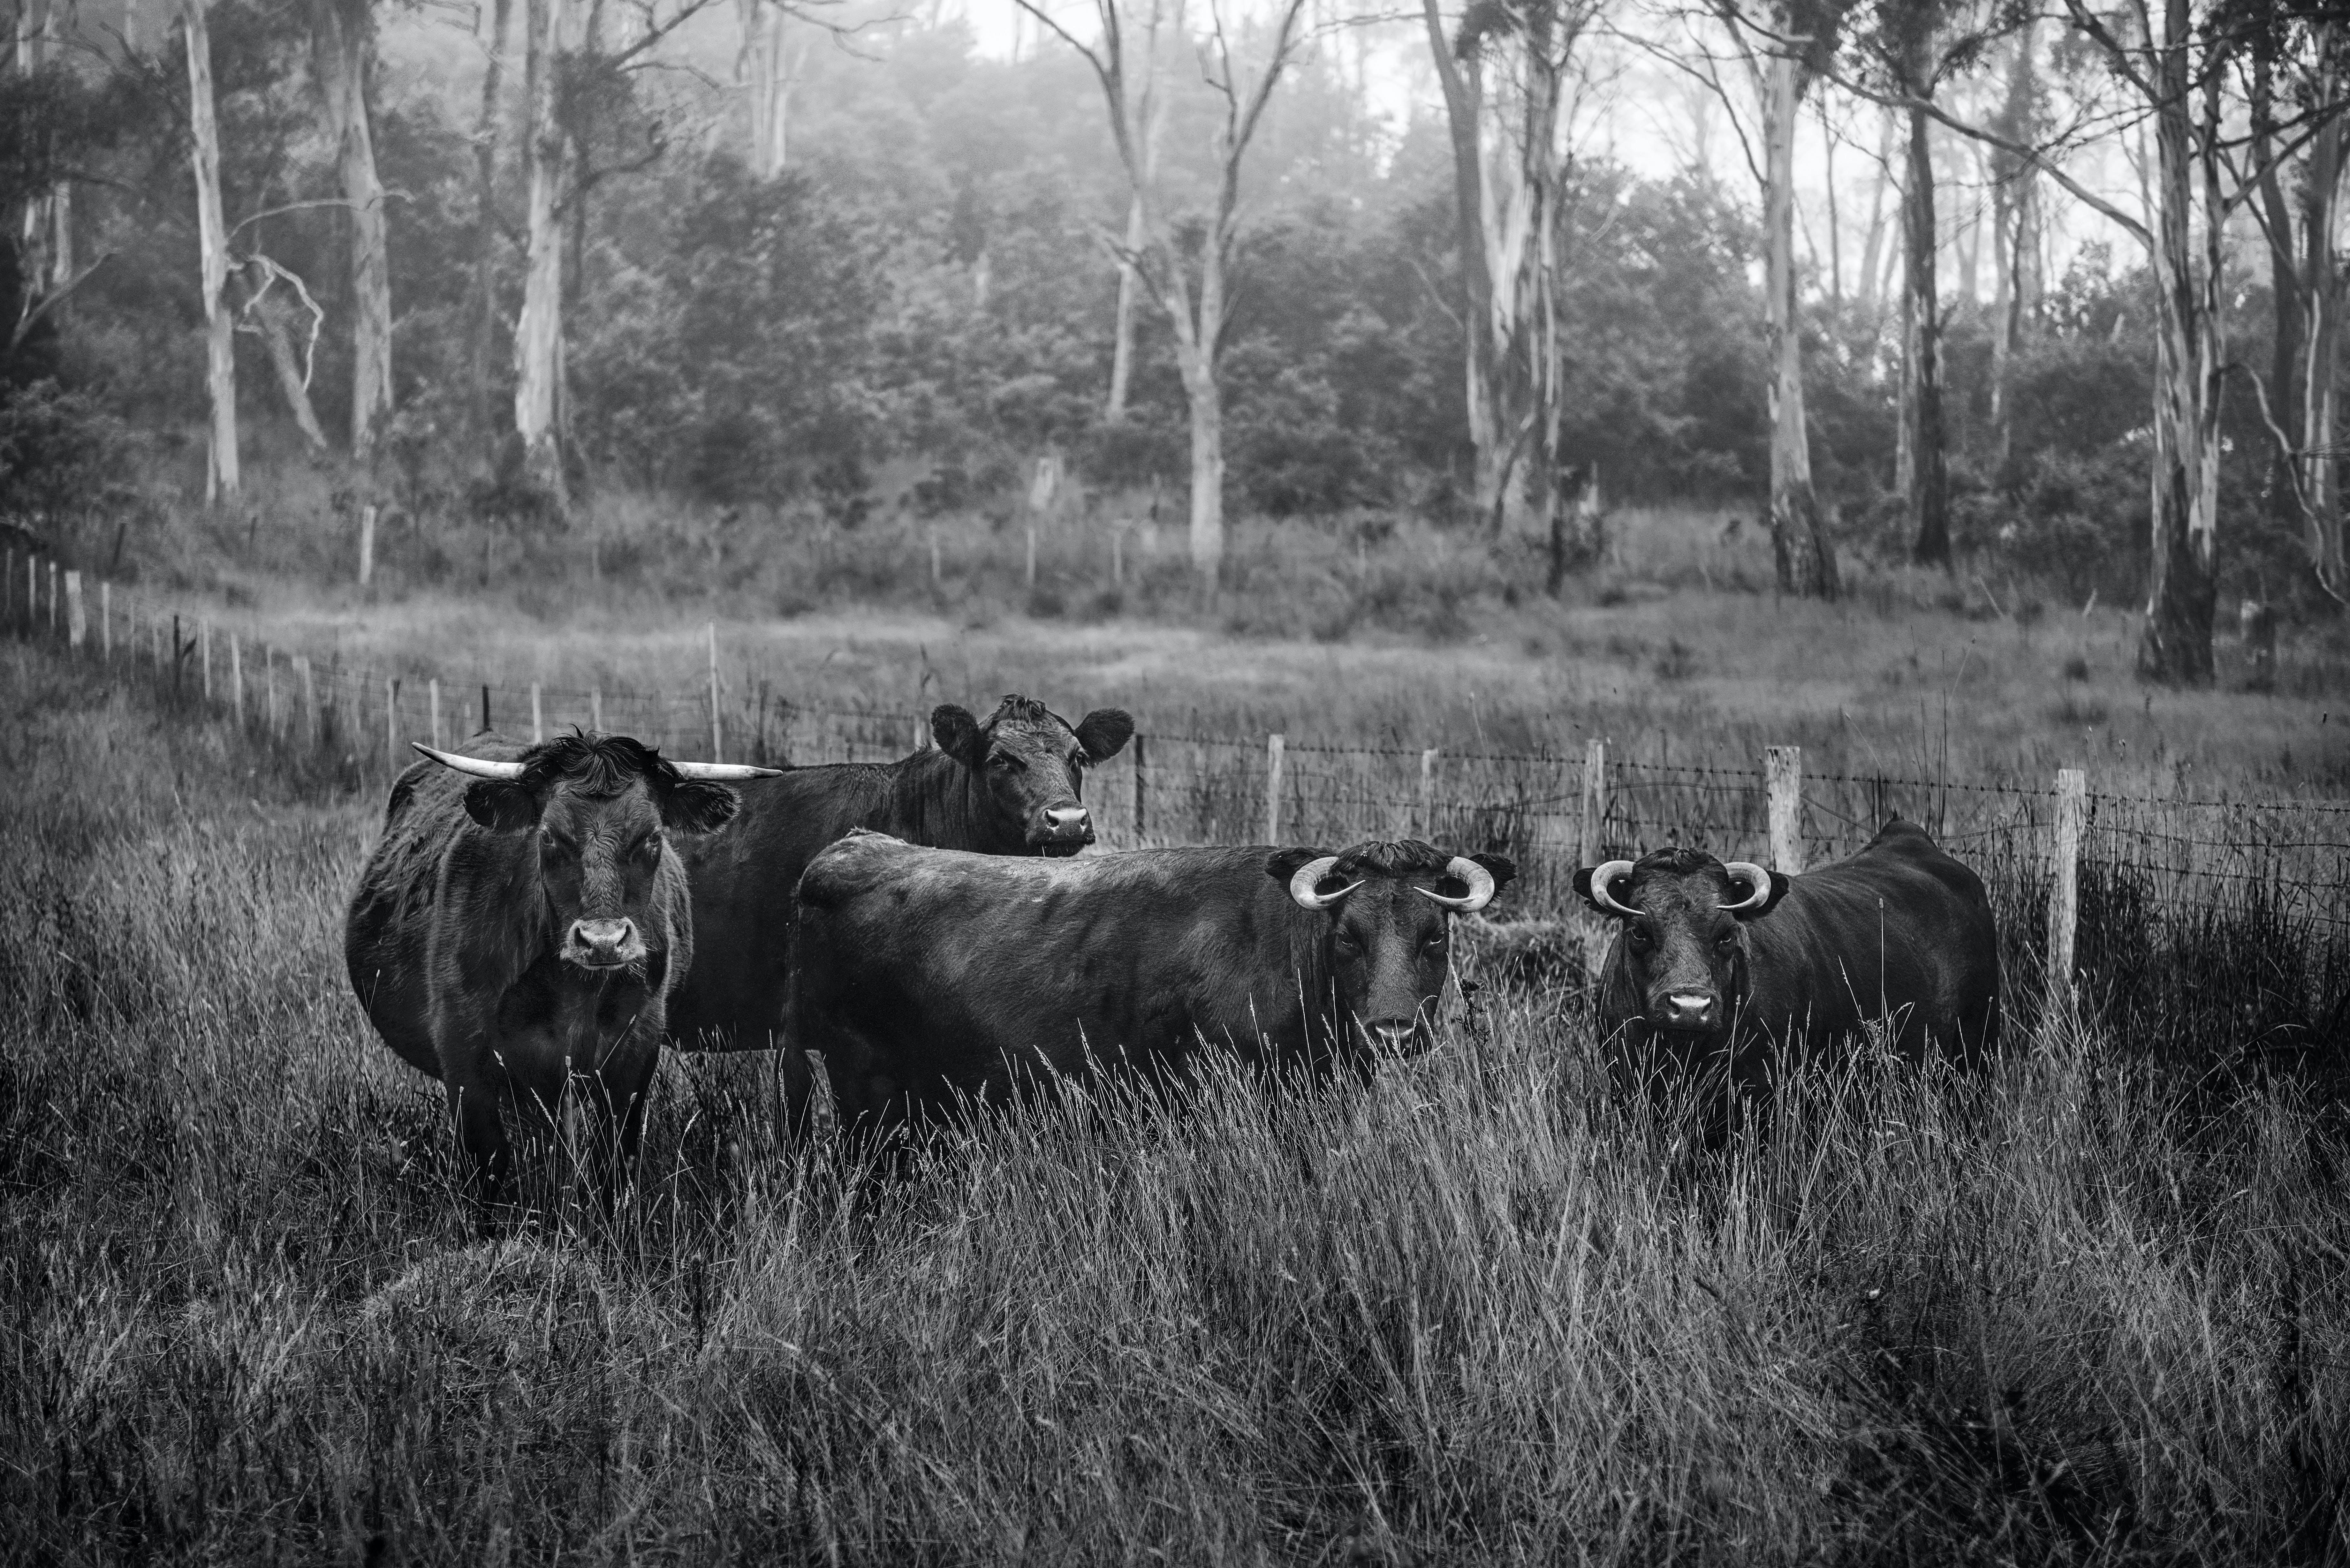 agriculture, animal, black-and-white